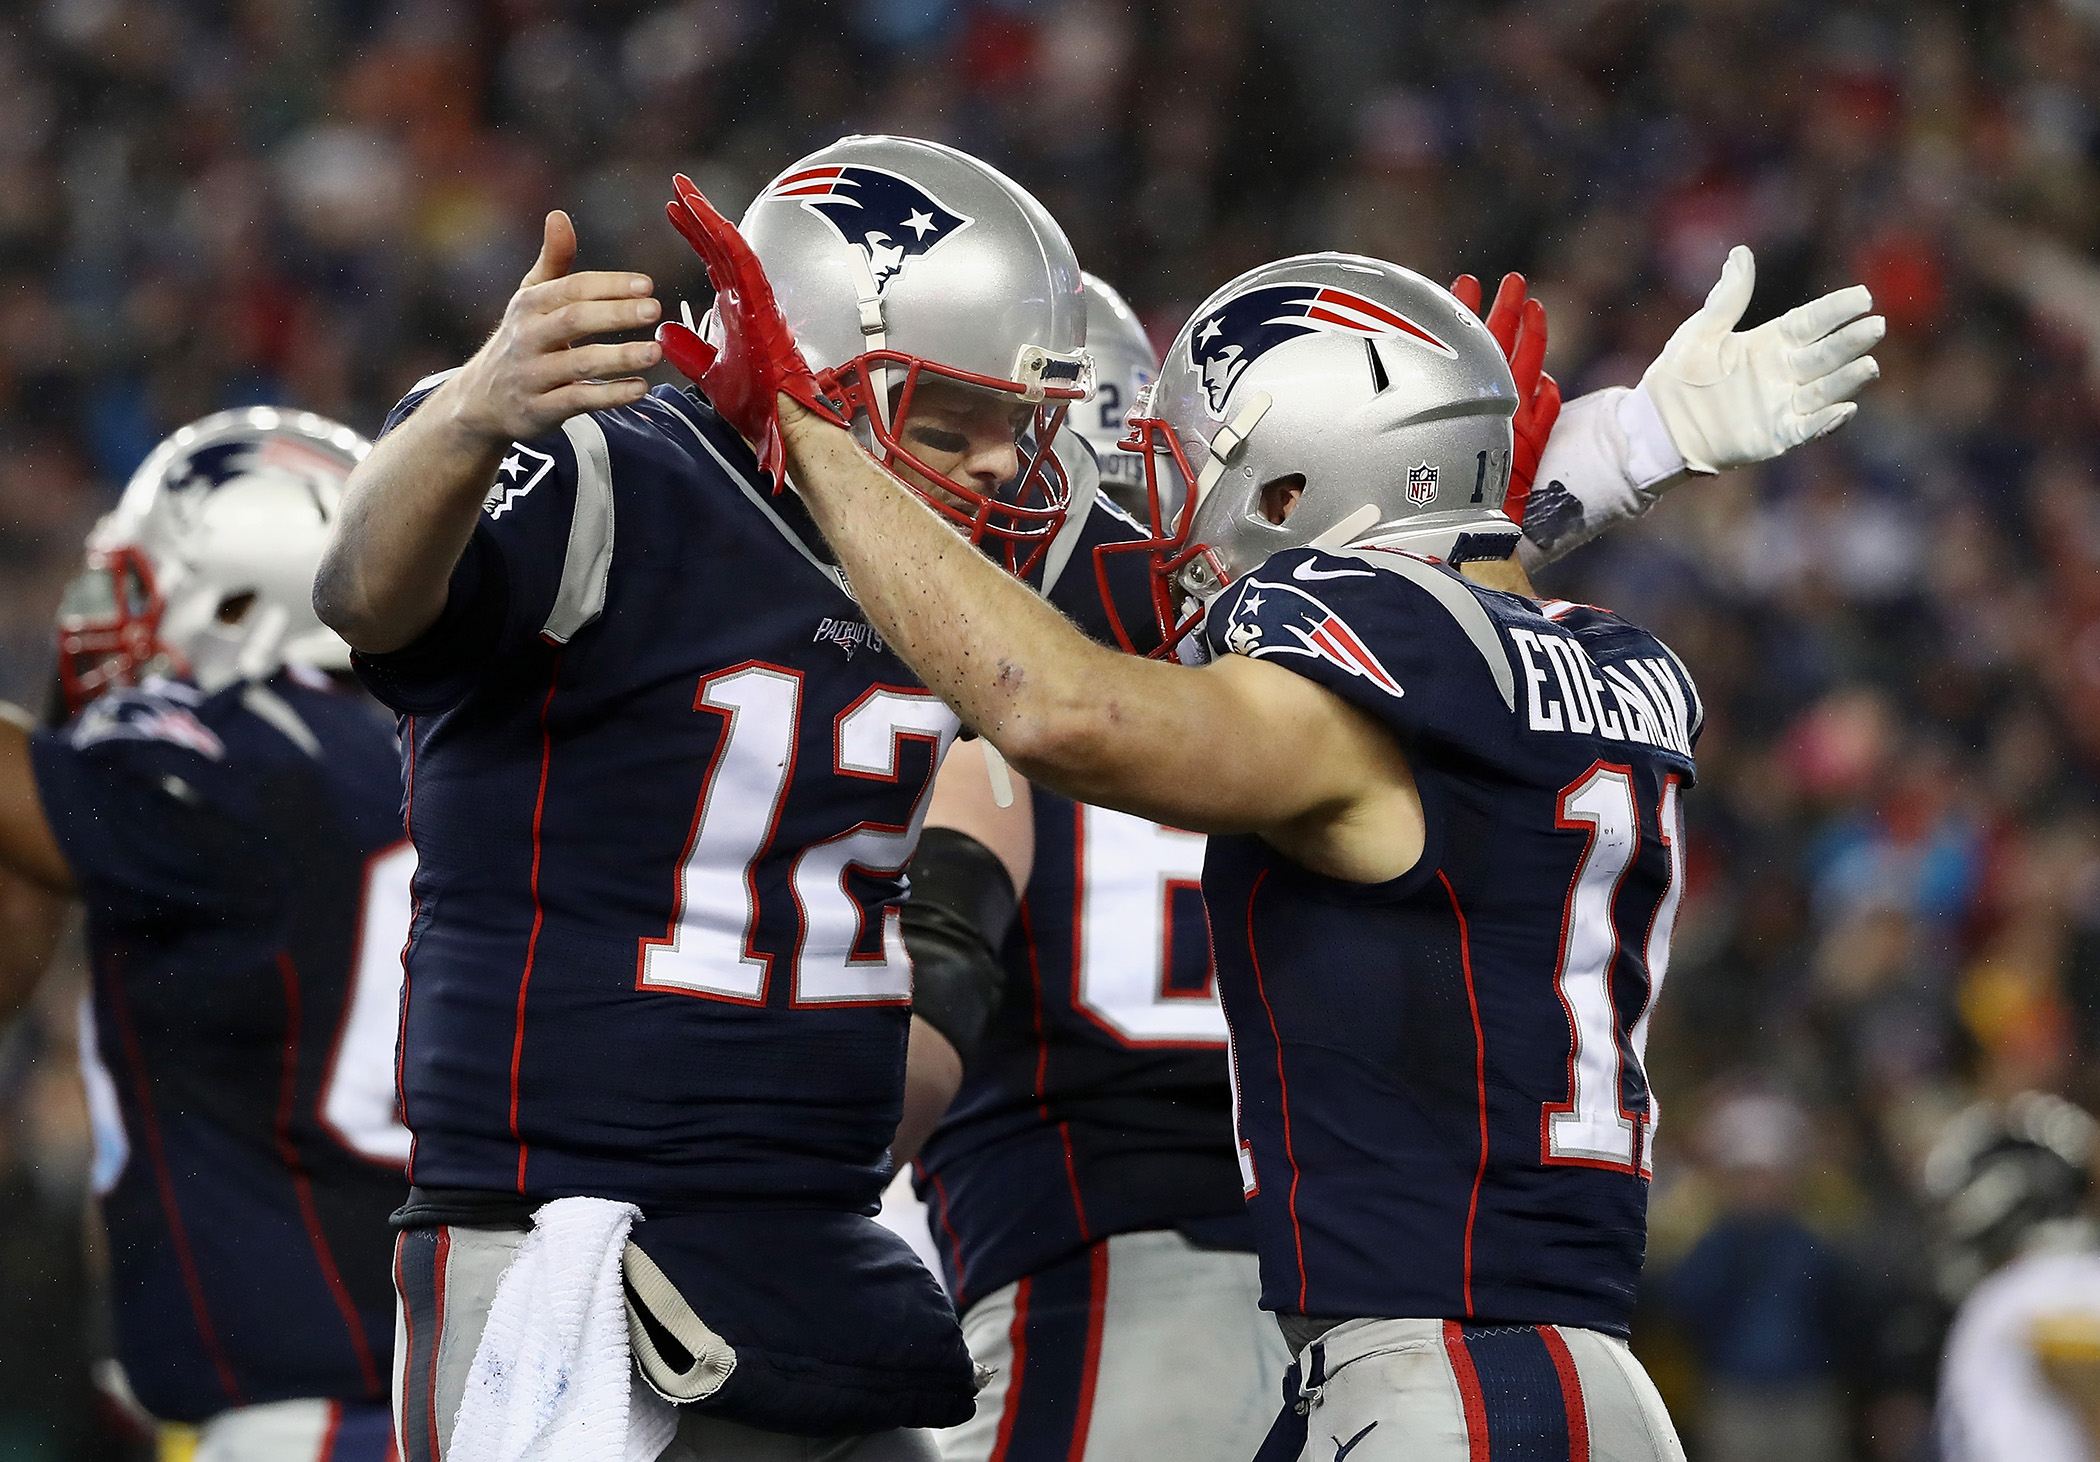 Julian Edelman #11 of the New England Patriots celebrates with Tom Brady #12 after scoring a touchdown during the third quarter against the Pittsburgh Steelers in the AFC Championship Game at Gillette Stadium on January 22, 2017 in Foxboro, Massachusetts.